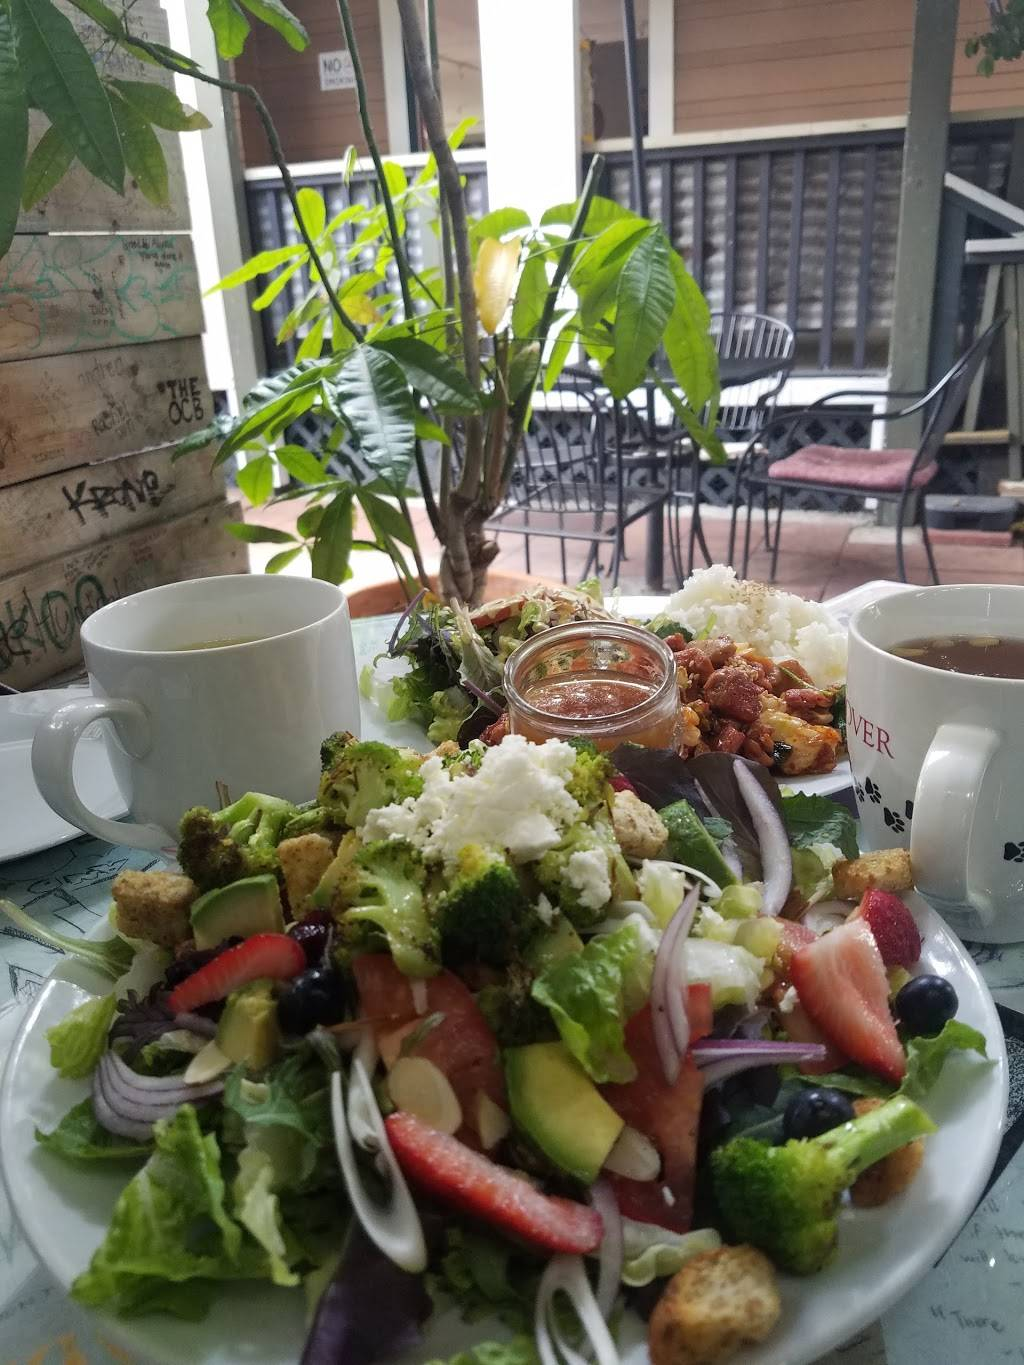 Veronese Gallery & Cafe   cafe   419 W Commonwealth Ave, Fullerton, CA 92832, USA   7145788265 OR +1 714-578-8265